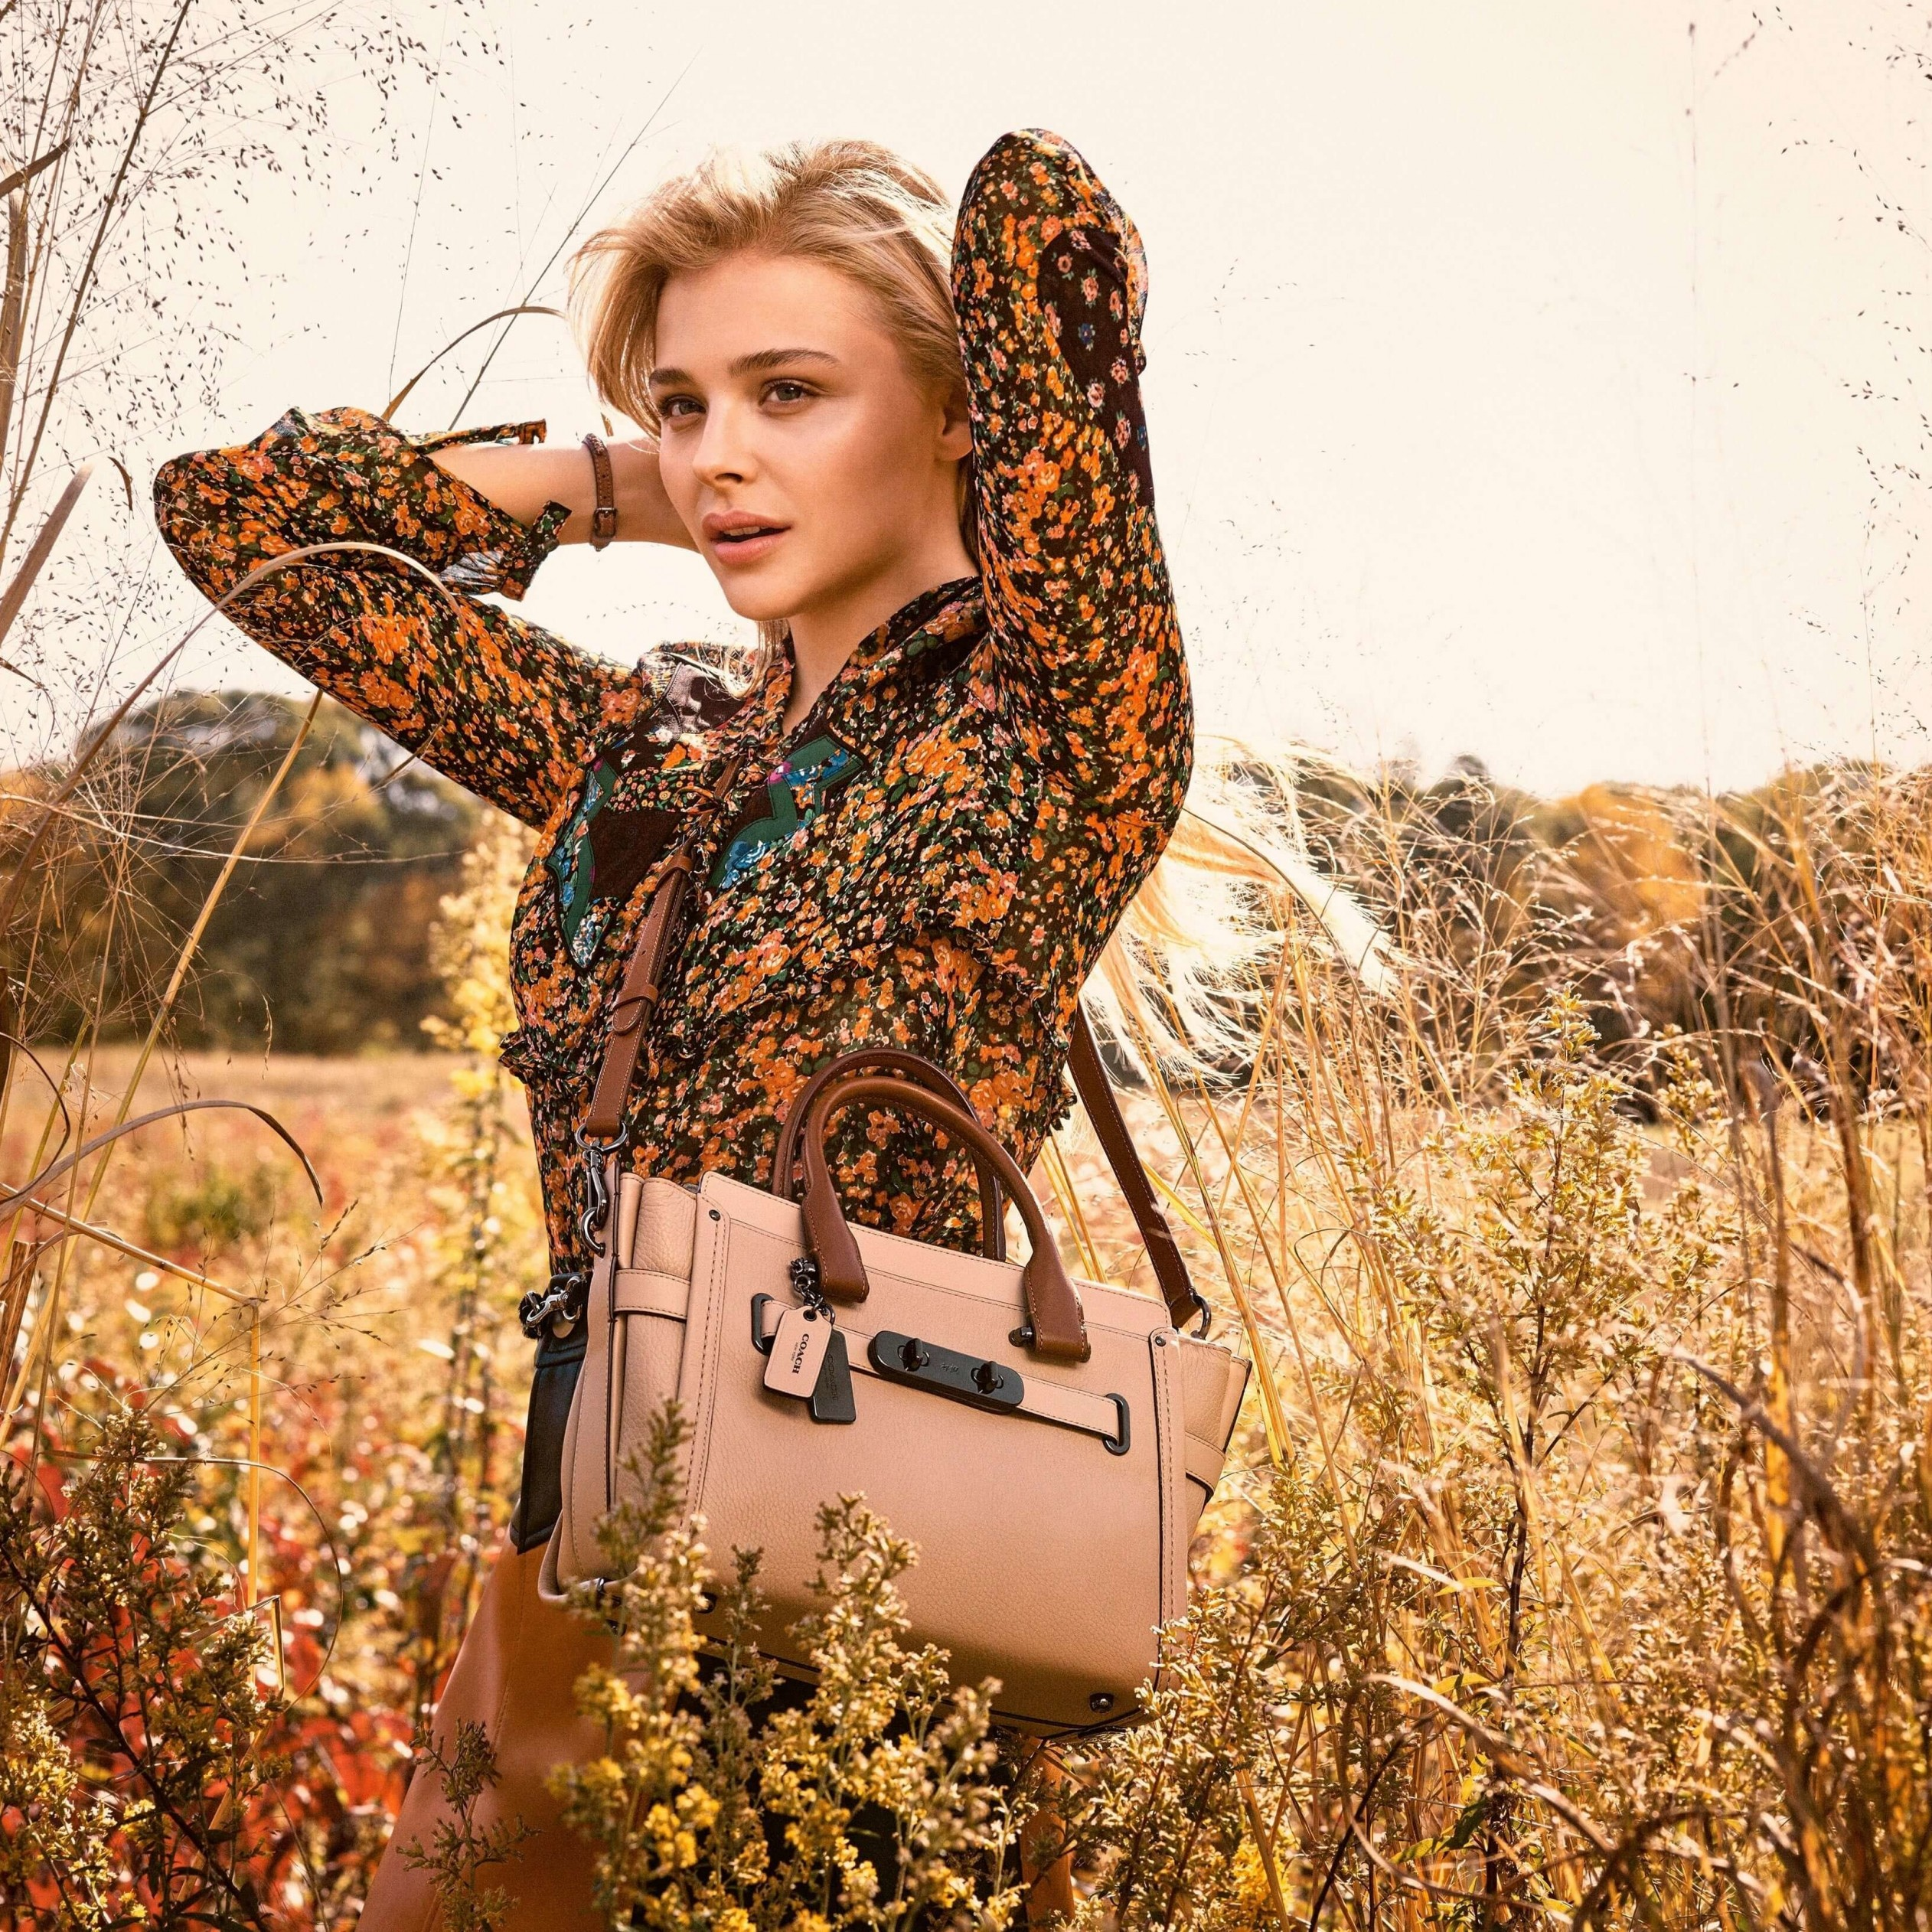 Chloe Moretz Coach Spring 2016 Campaign Wallpaper for Apple iPad 3